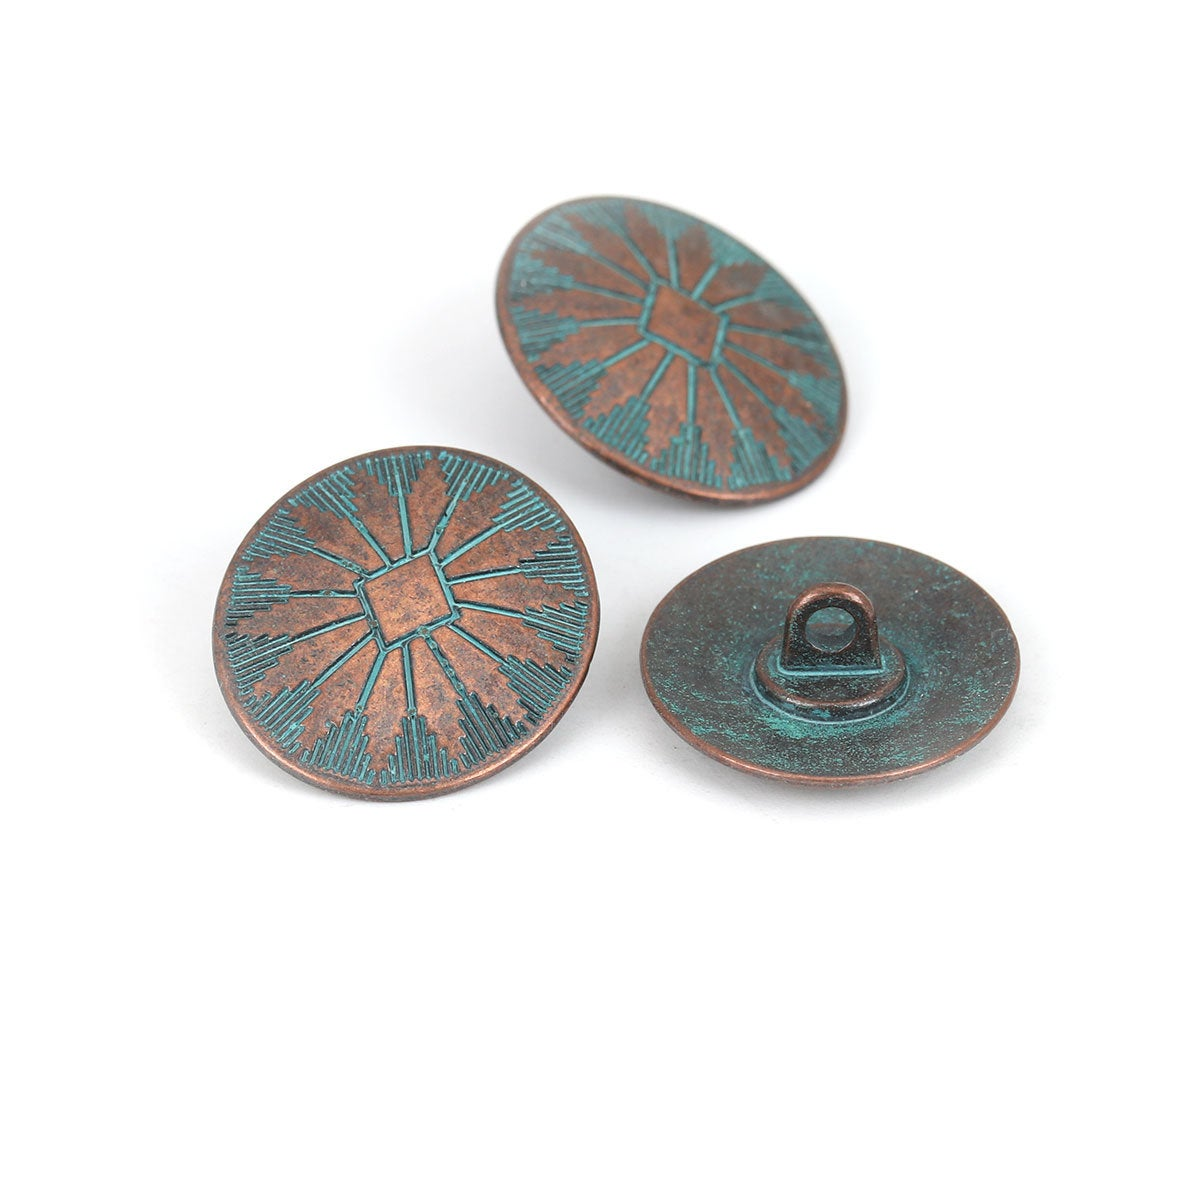 Metal Shank Sewing Buttons - Round Antique Copper Patina - 25mm x 22mm - Metal Buttons